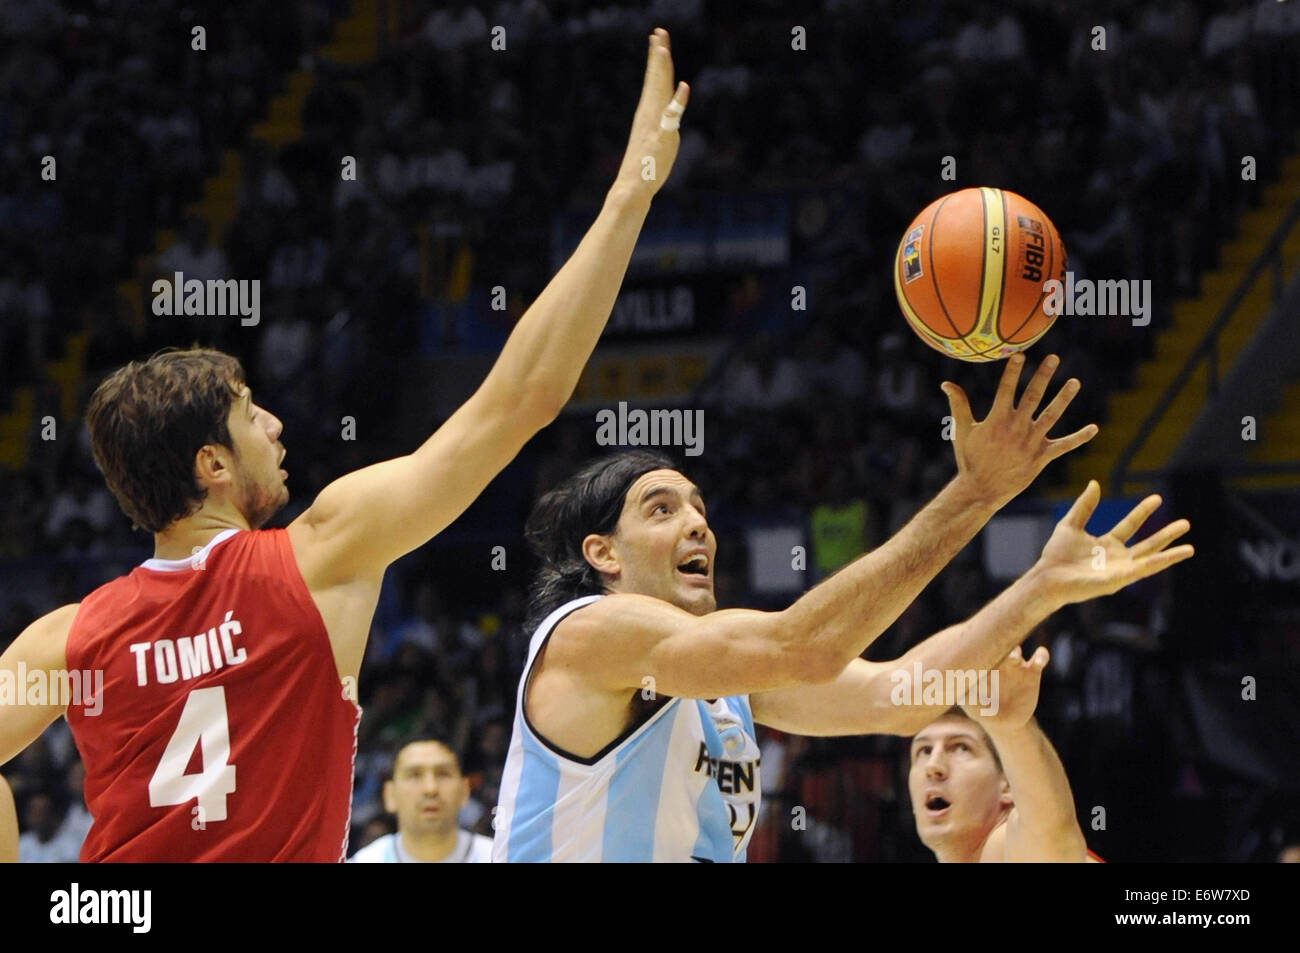 Seville, Spain. 31st Aug, 2014. Luis Scola (C) of Argentina competes during the Group B match against Croatia at - Stock Image